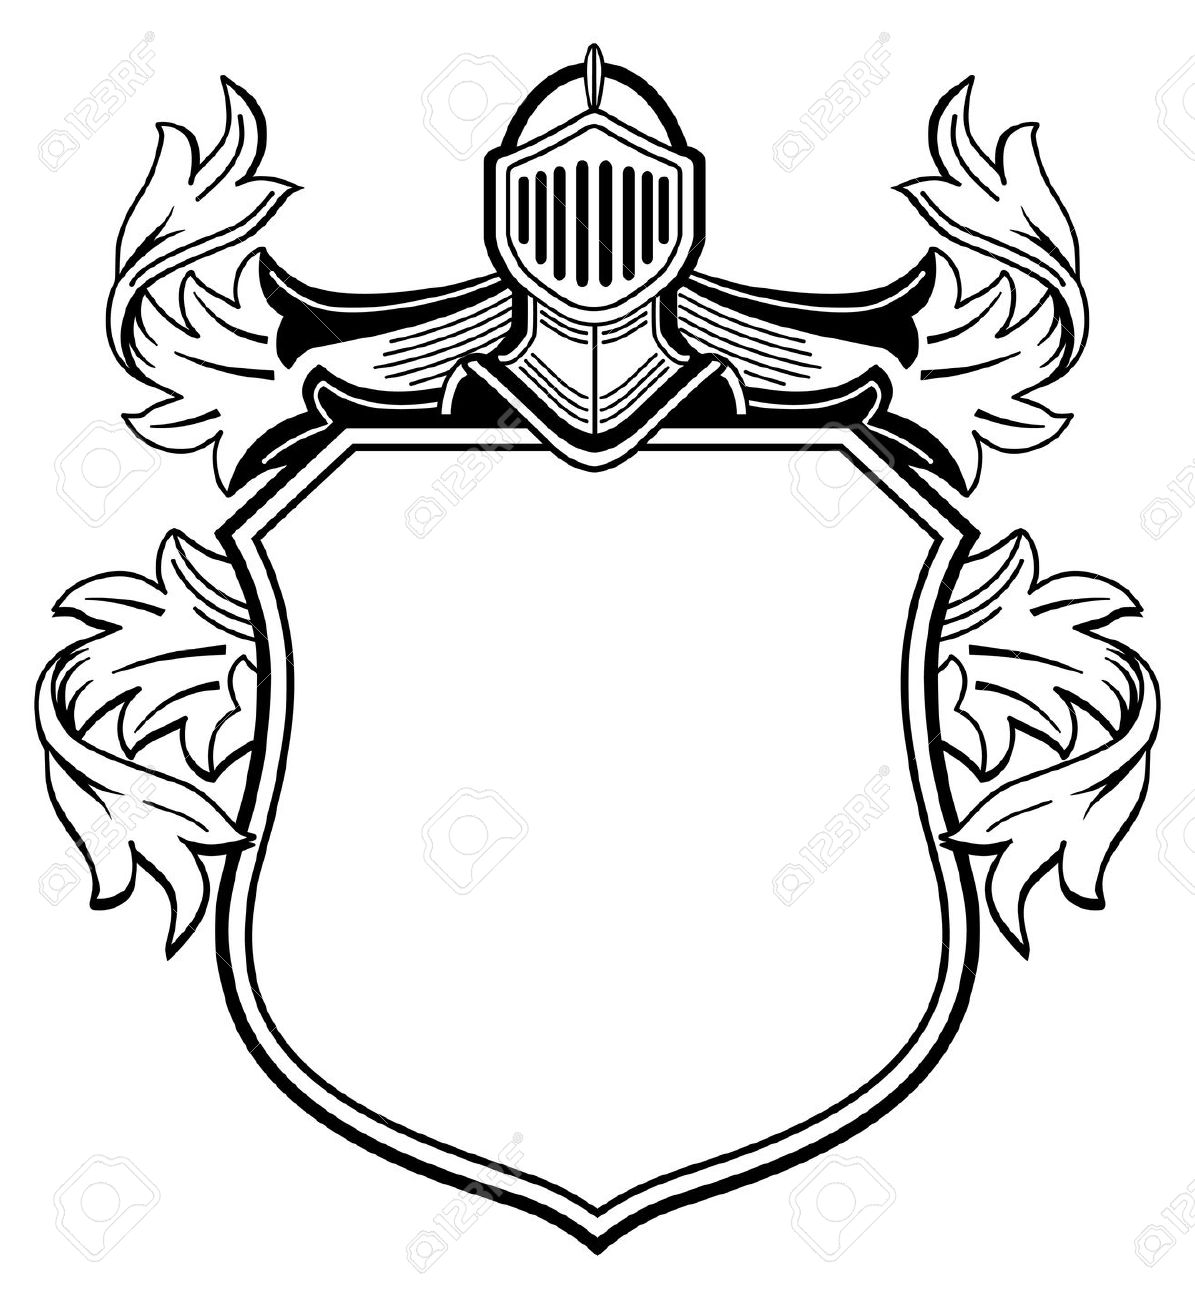 1195x1300 Shield Knight Clipart, Explore Pictures